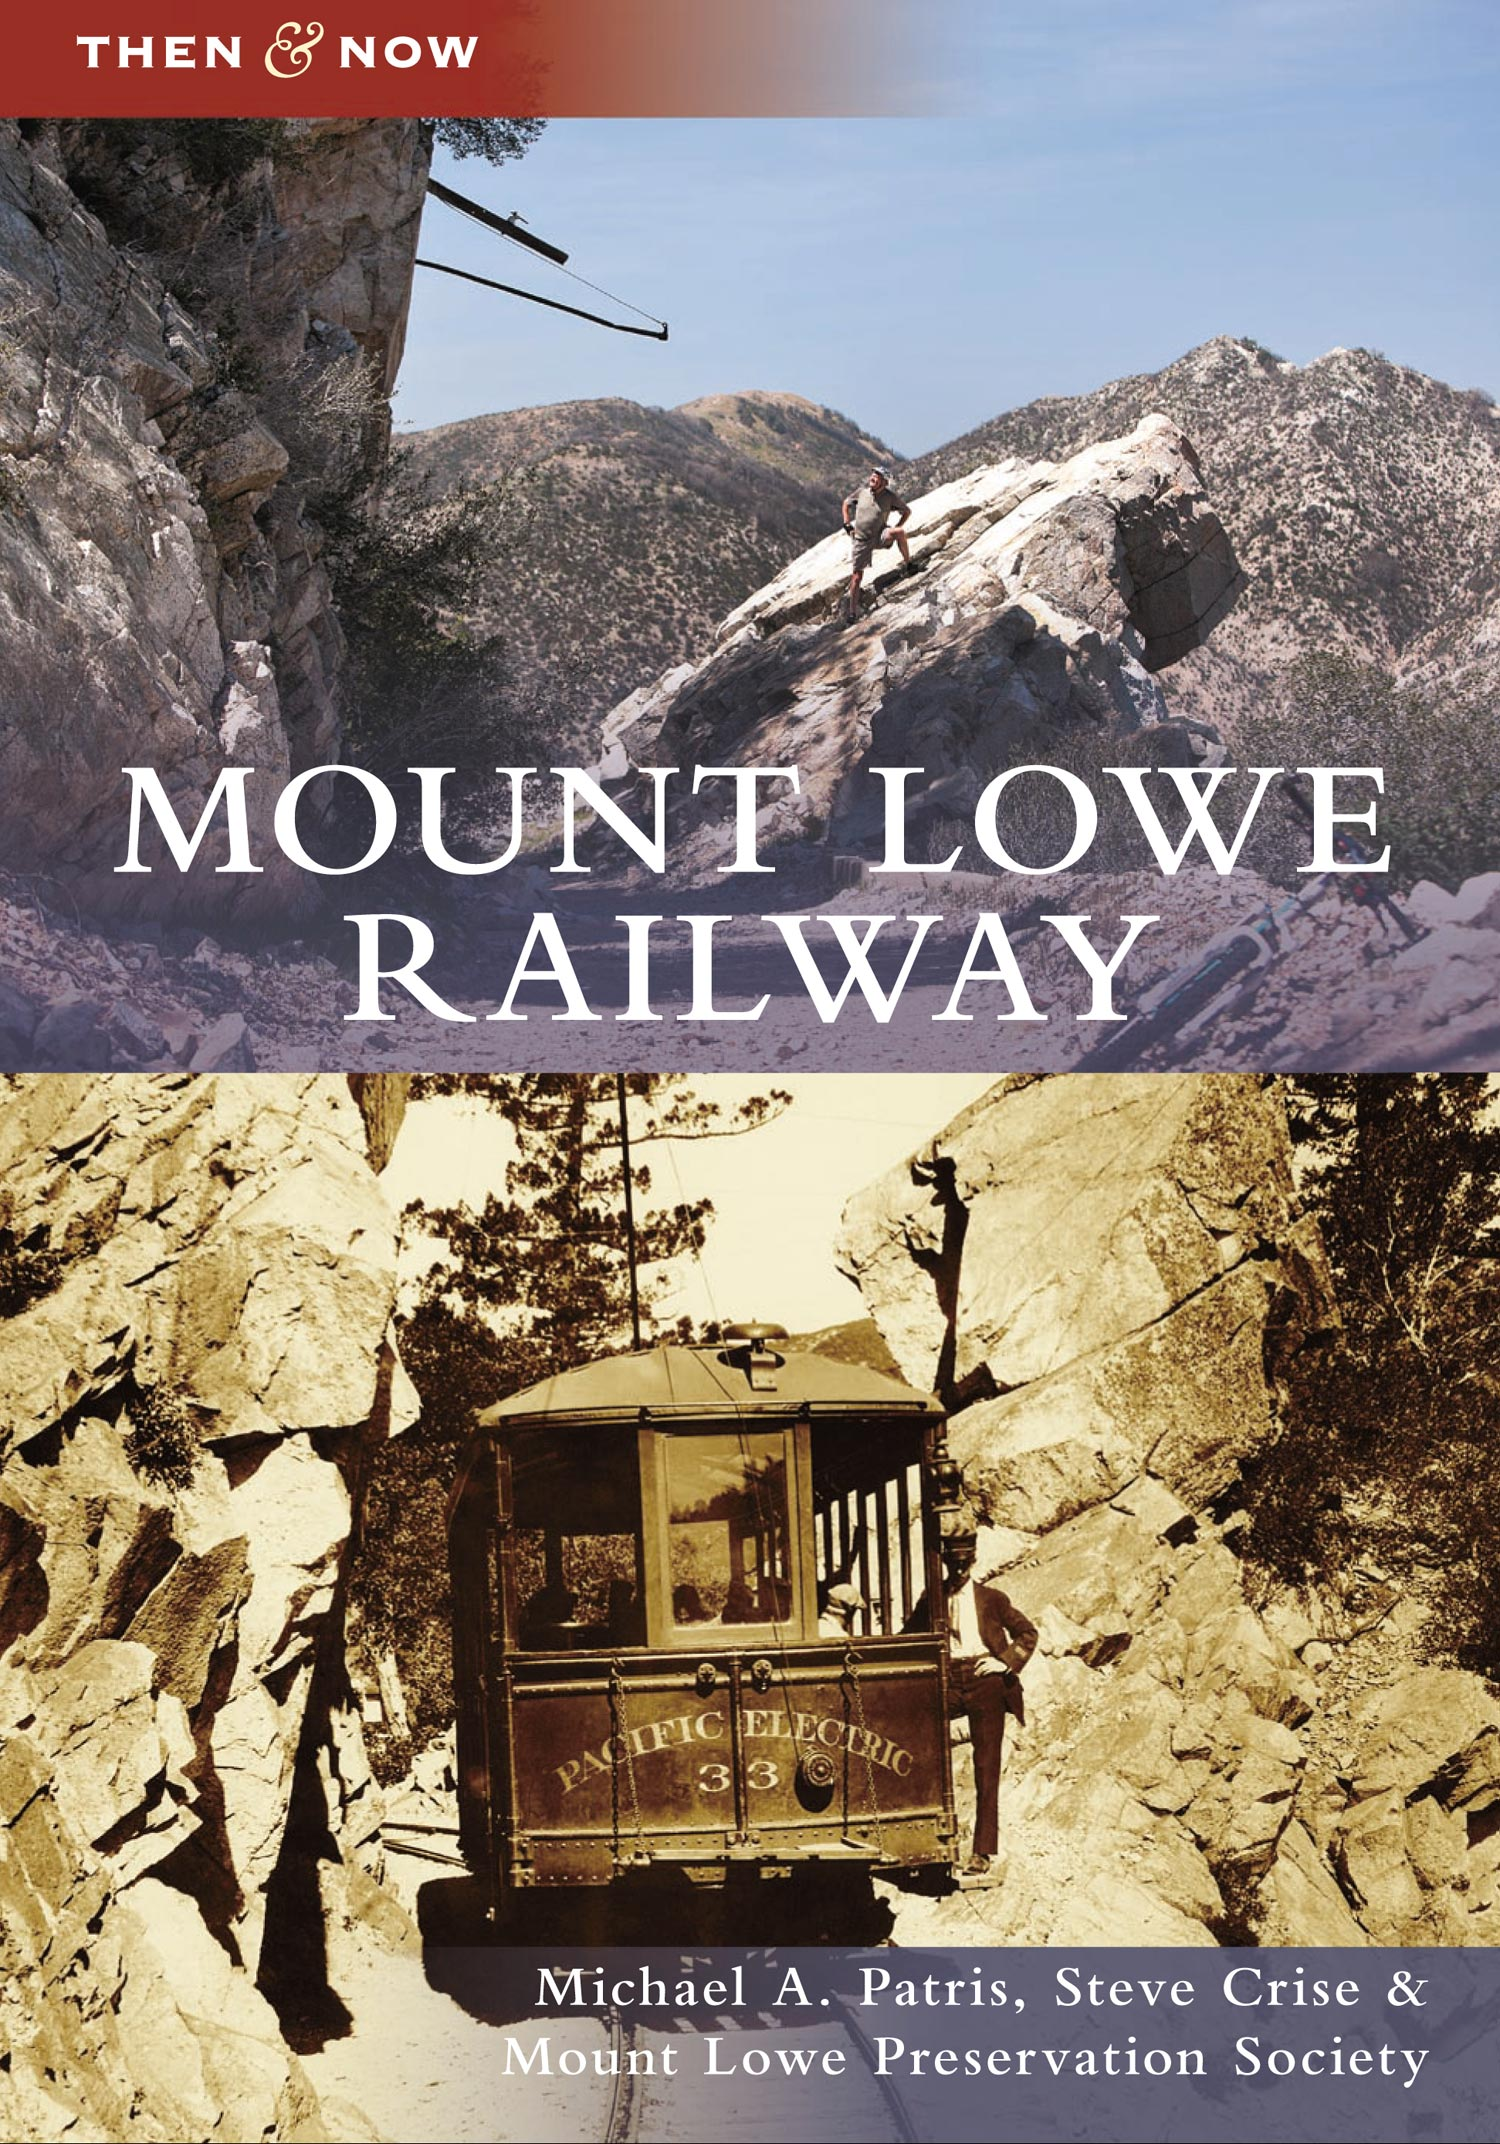 Mount Lowe Then & Now, by Steve Crise and Michael Patris